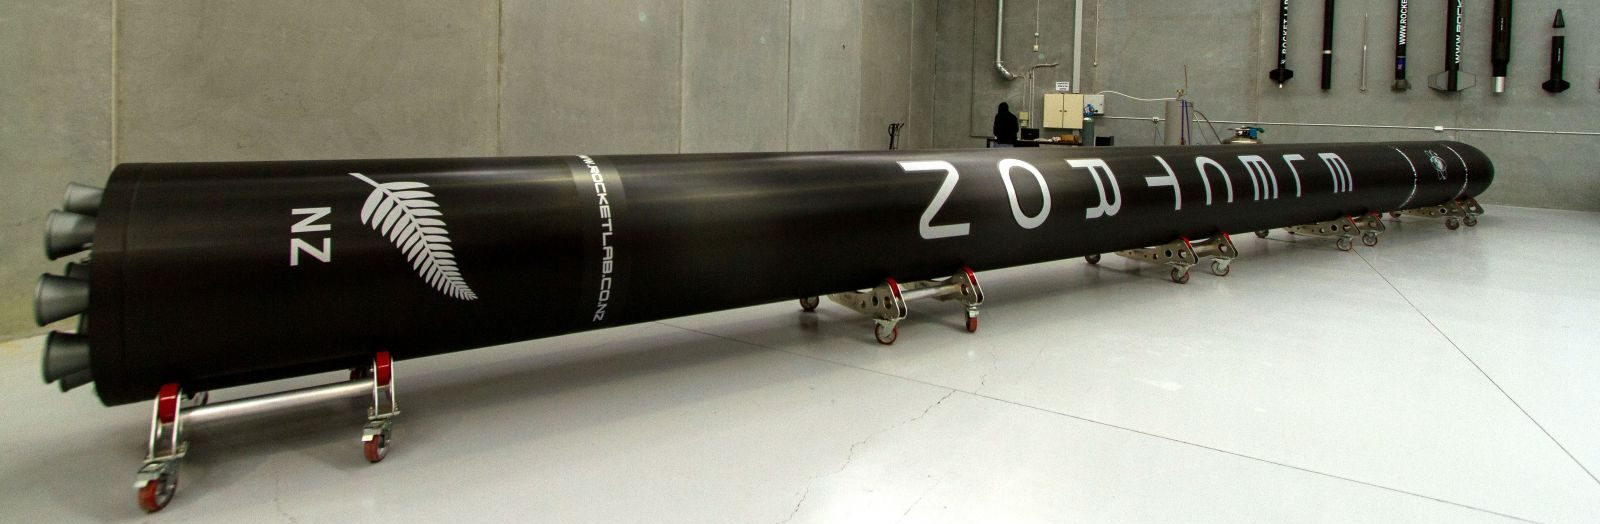 Electron Rocket. Photo Credit: Rocket Lab